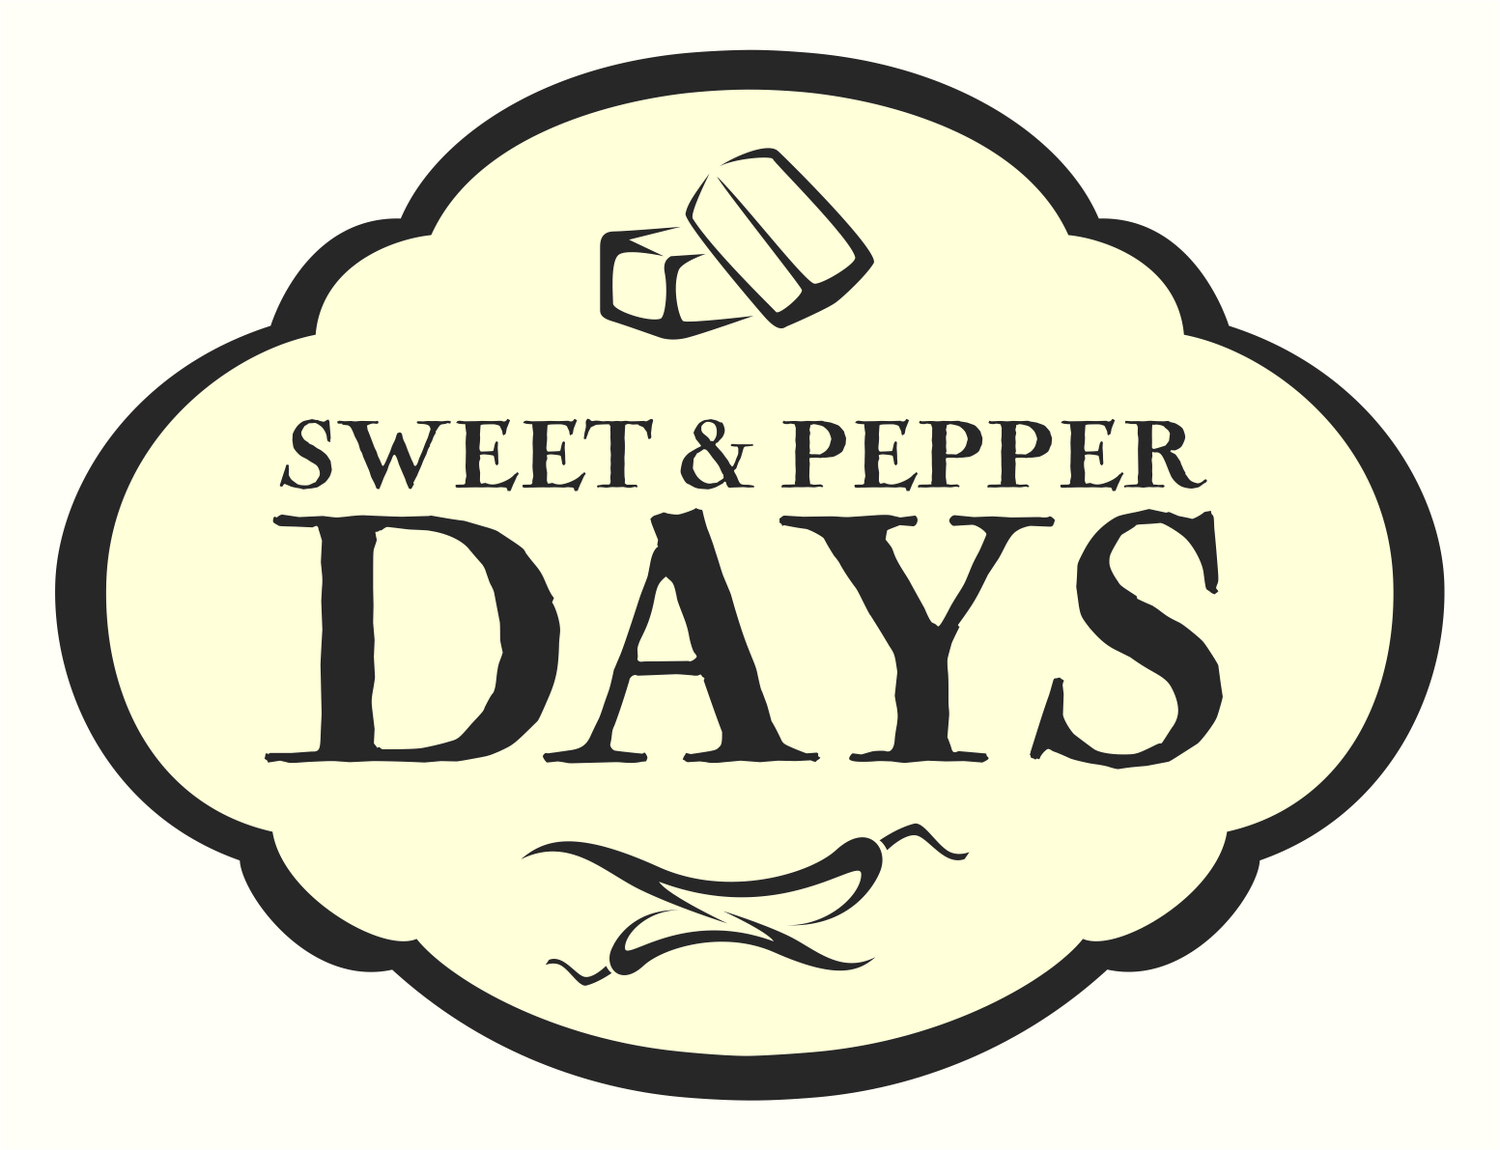 Sweet & Pepper DAYS